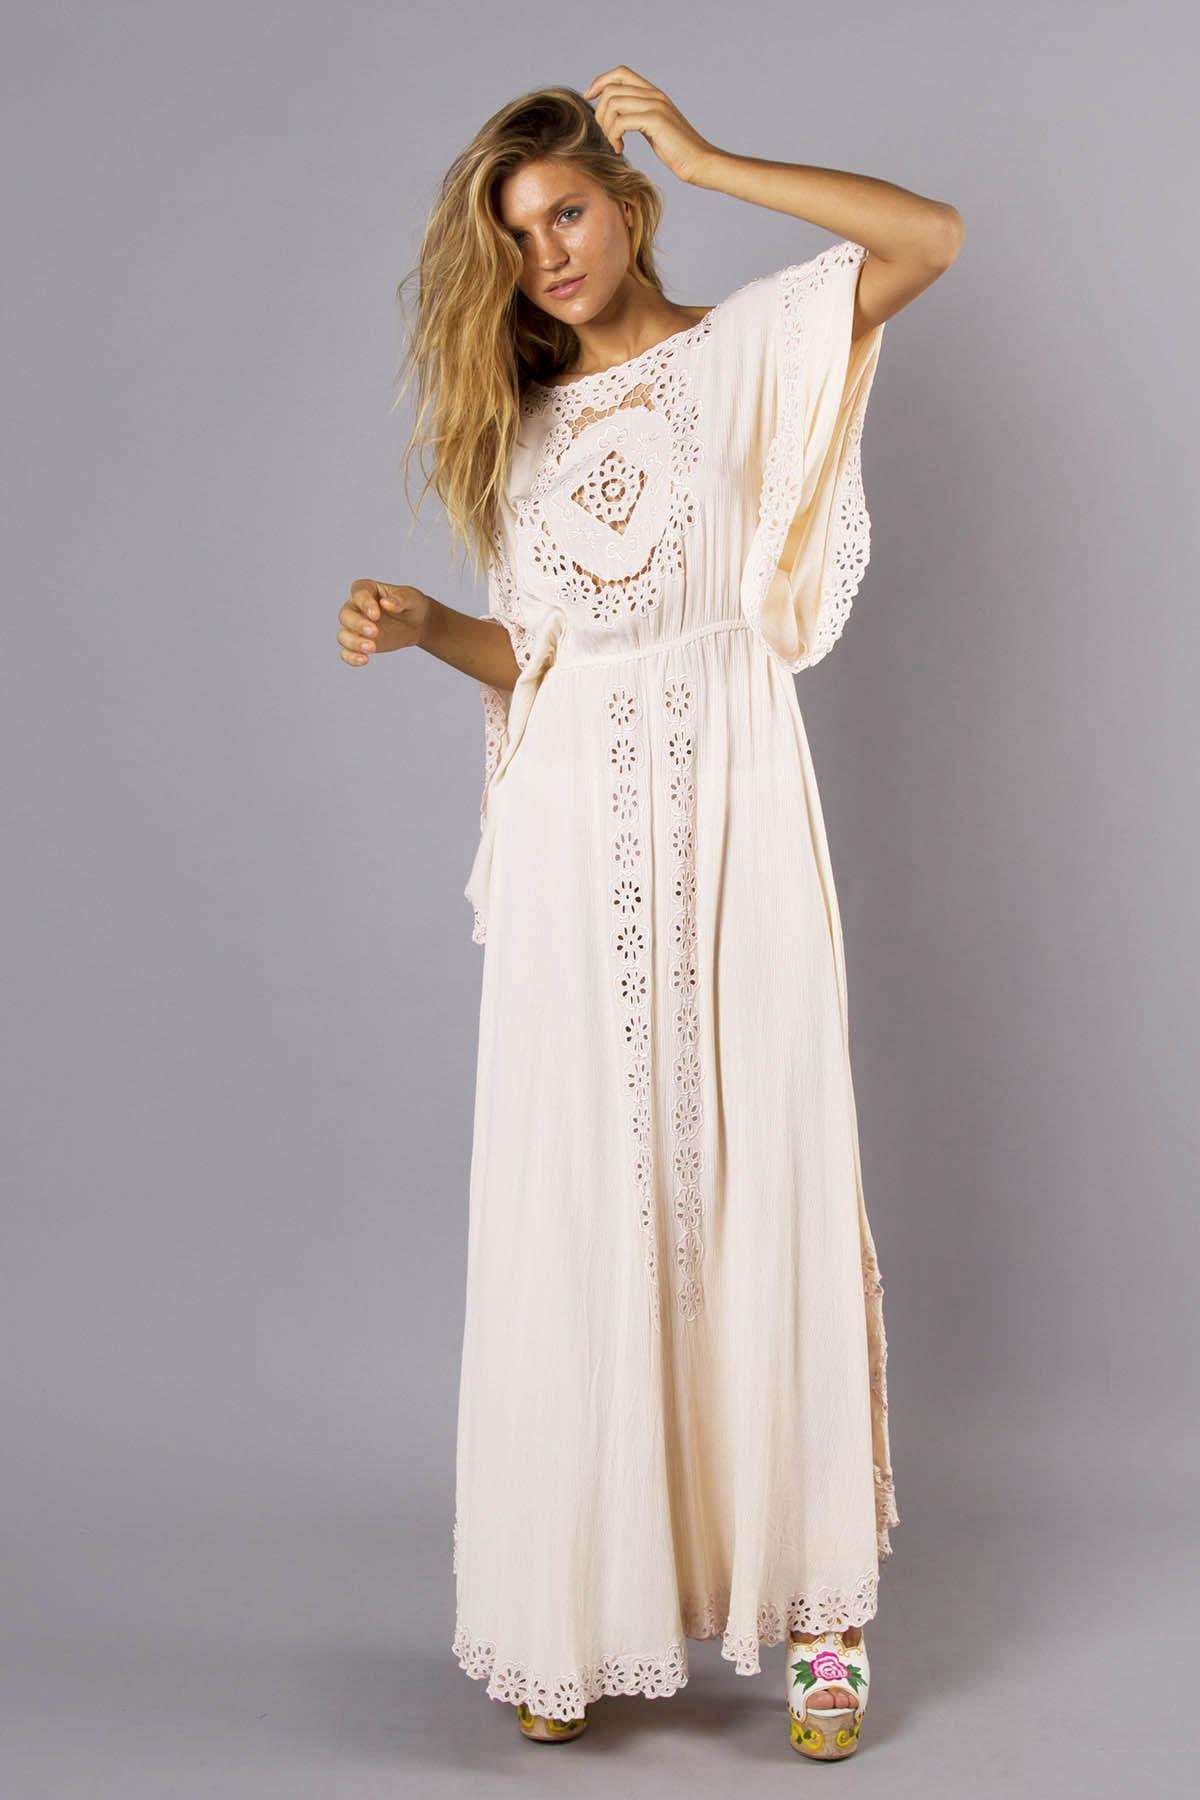 Quot I Believe In Unicorns Maxi Dress Quot Women S Embroidered